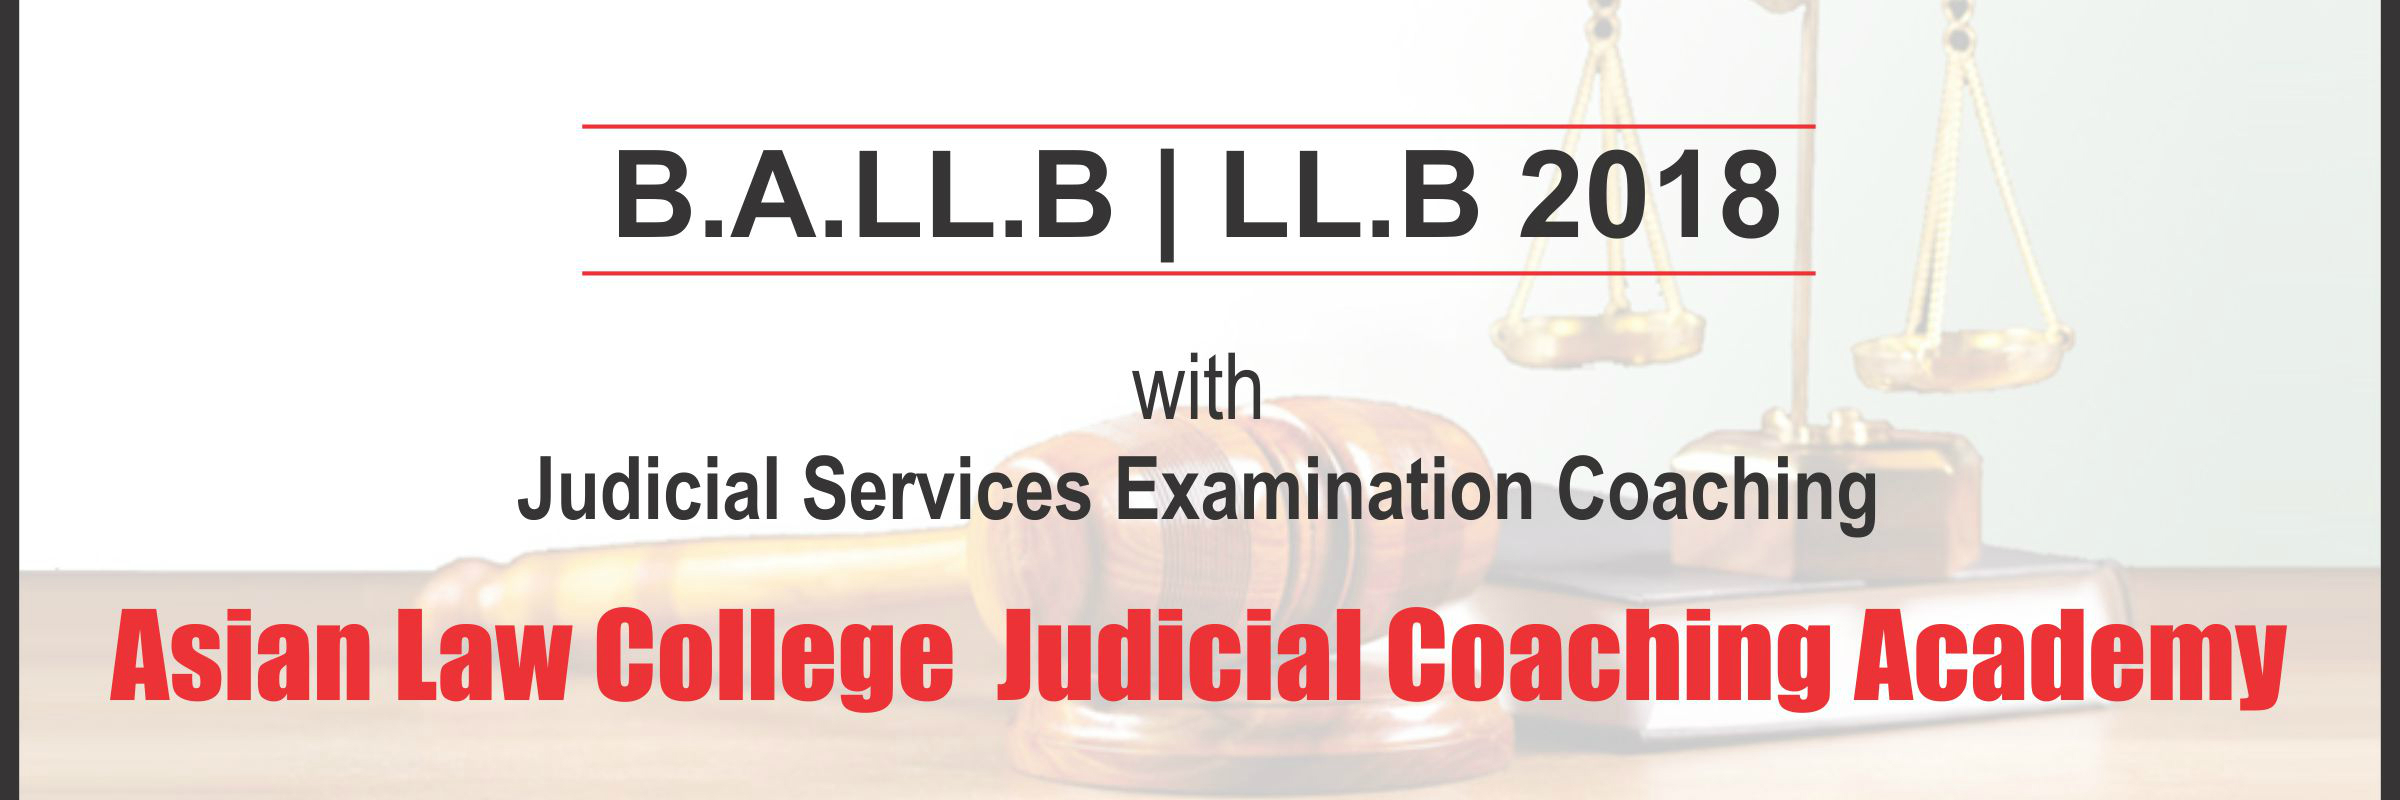 Asian Law College Judicial Coaching Academy for Judicial Service Examination